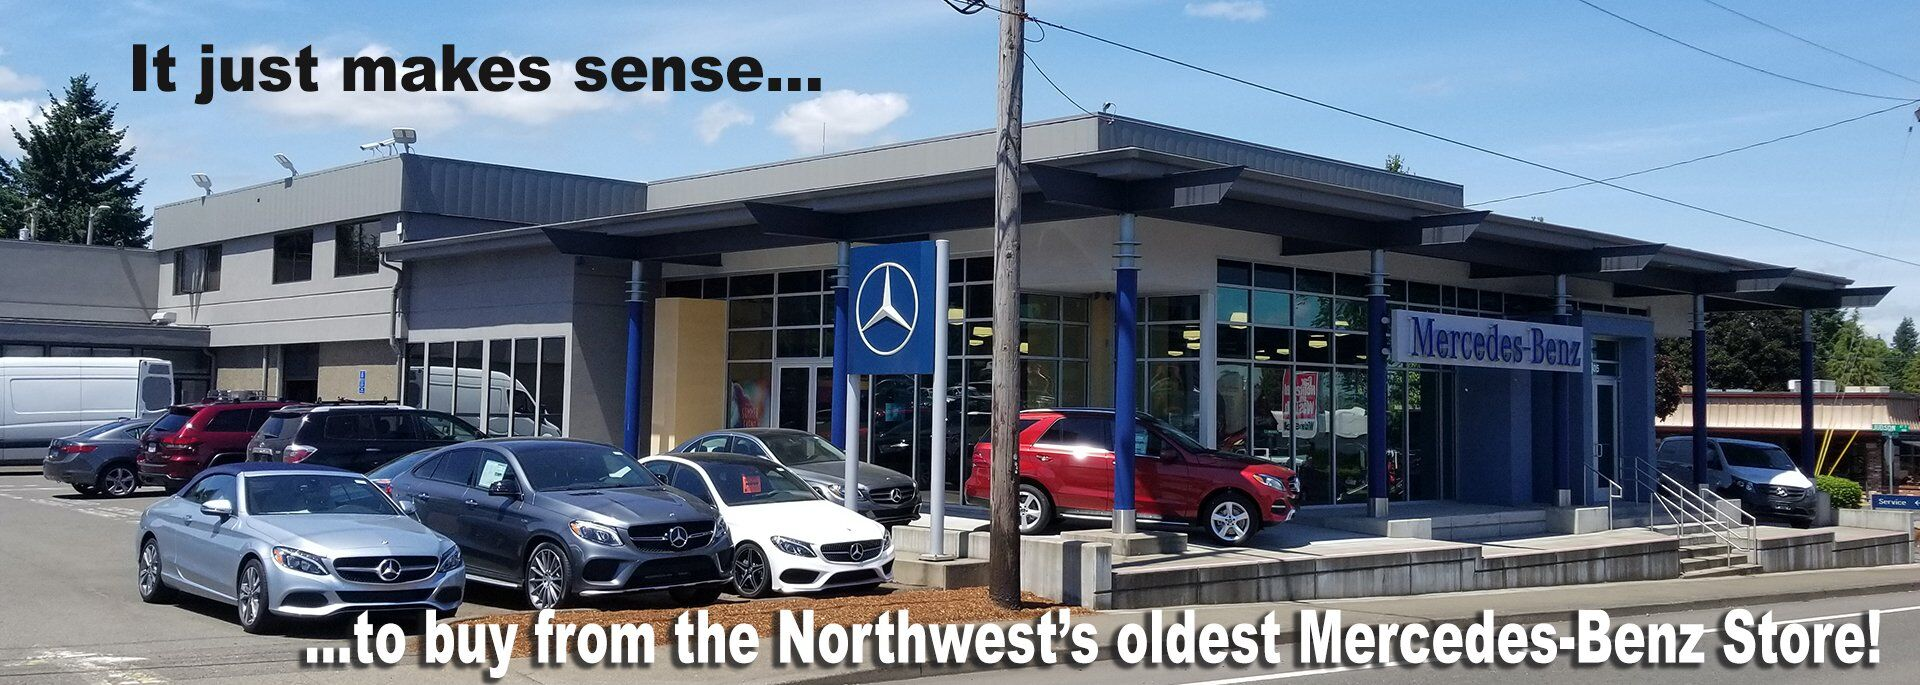 Northwest's oldest Mercedes-Benz Dealer